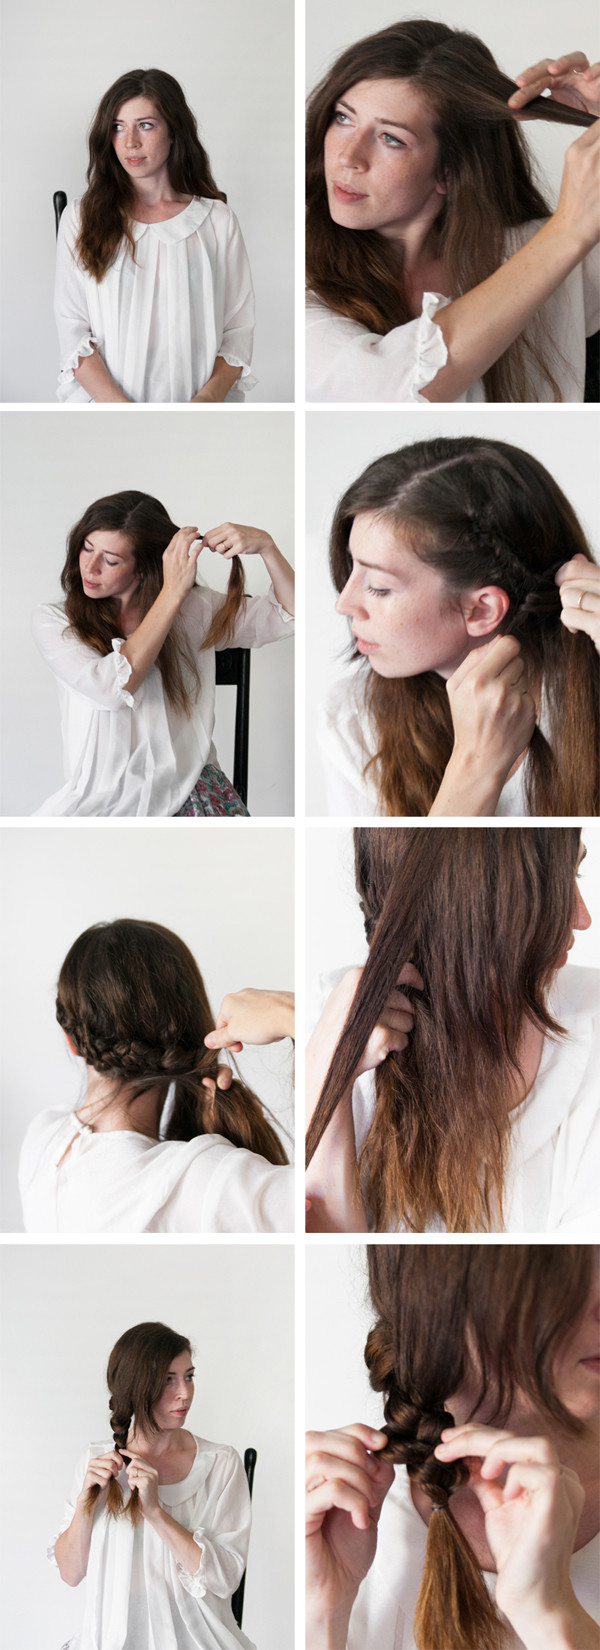 Best ideas about Easy Overnight Hairstyles . Save or Pin 7 Things Nobody Told You About Overnight Hairstyles For Now.